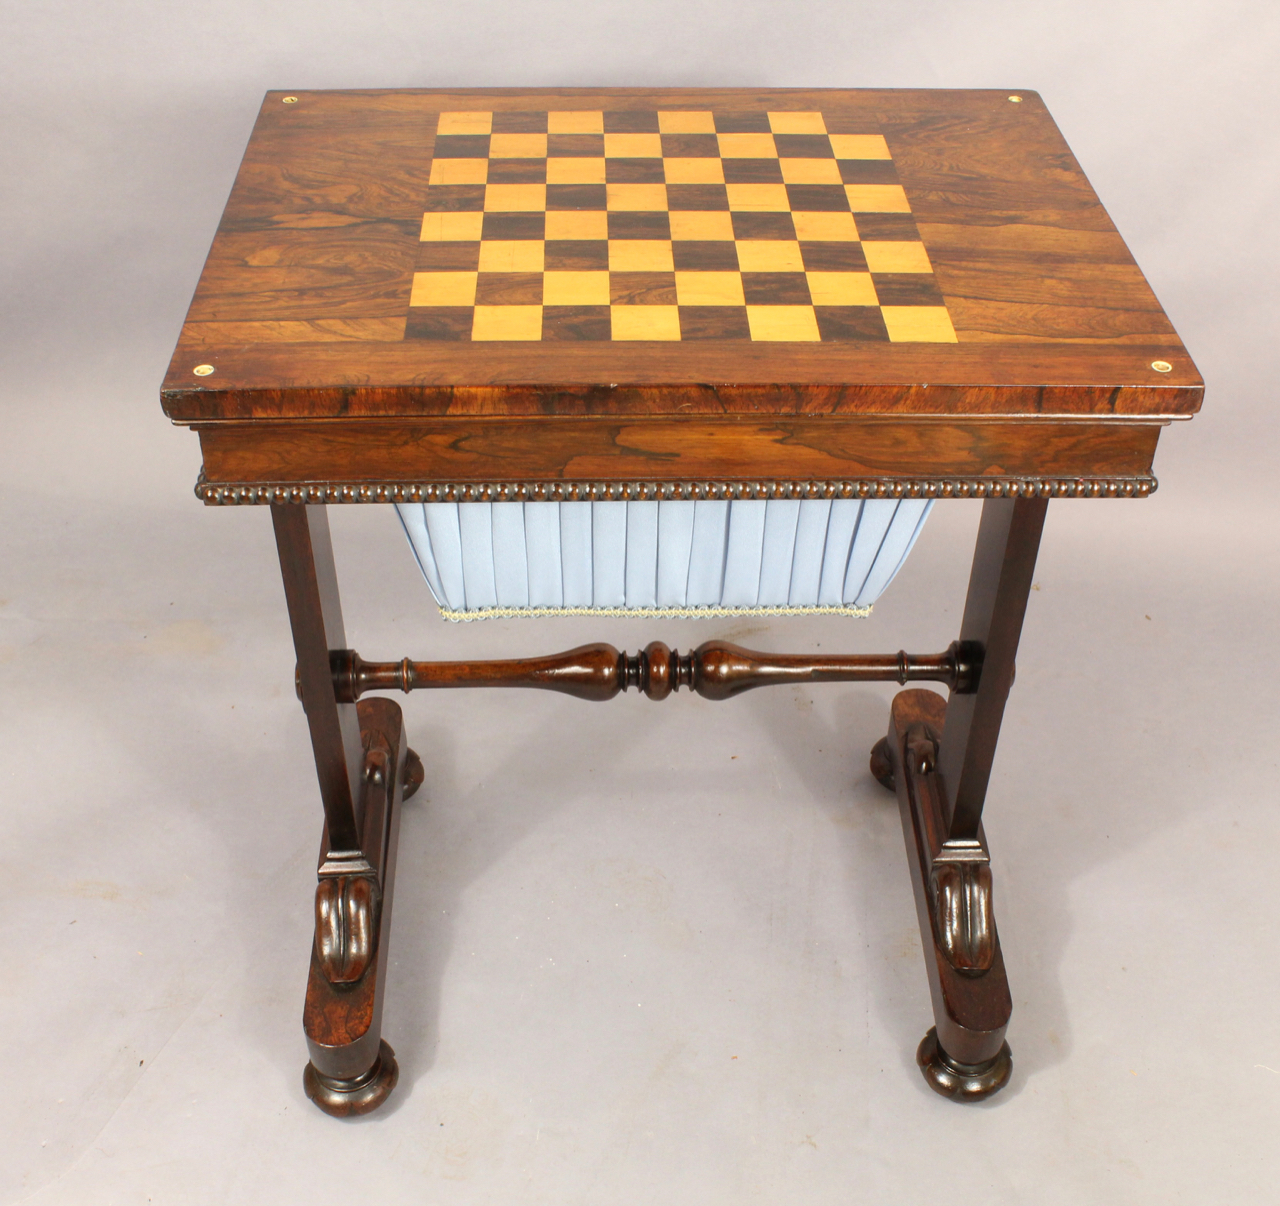 Regency Games Table